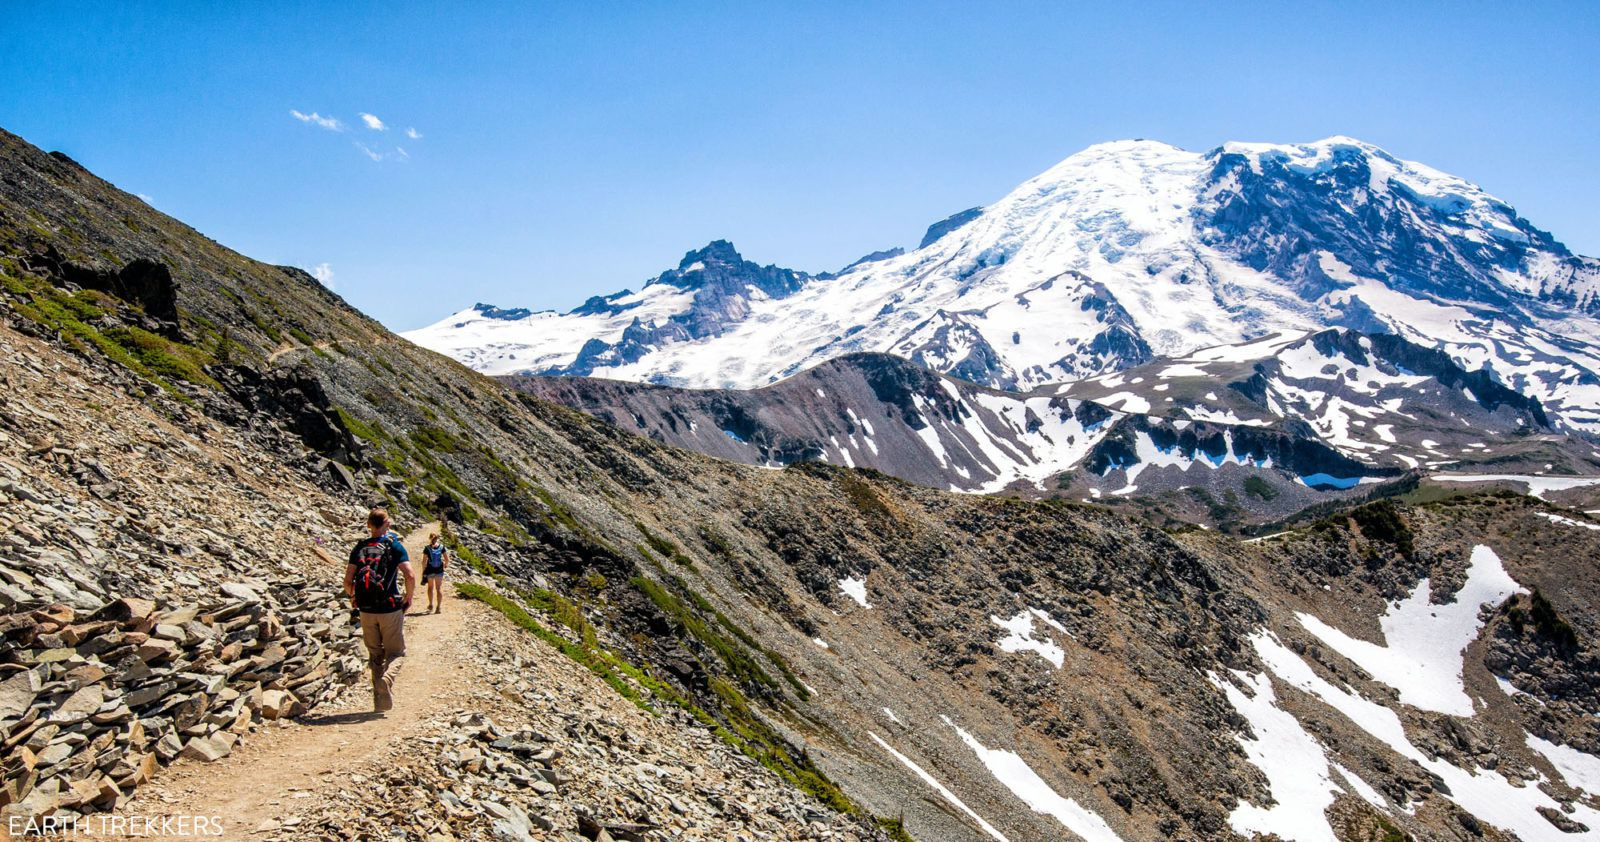 Hike Mount Rainier National Park